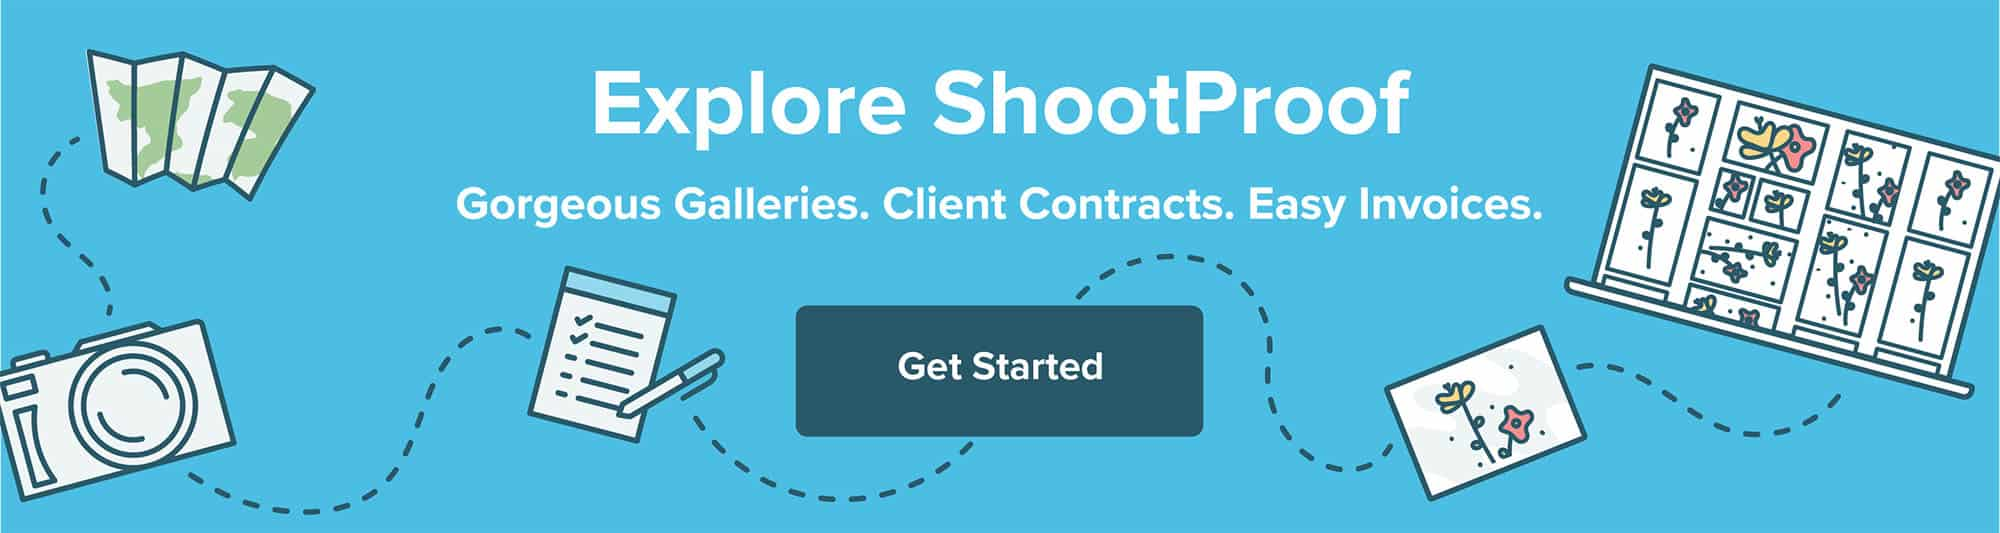 Show, share, and sell your photos with ShootProof! ? Powerful galleries, contracts, & invoices for pros.